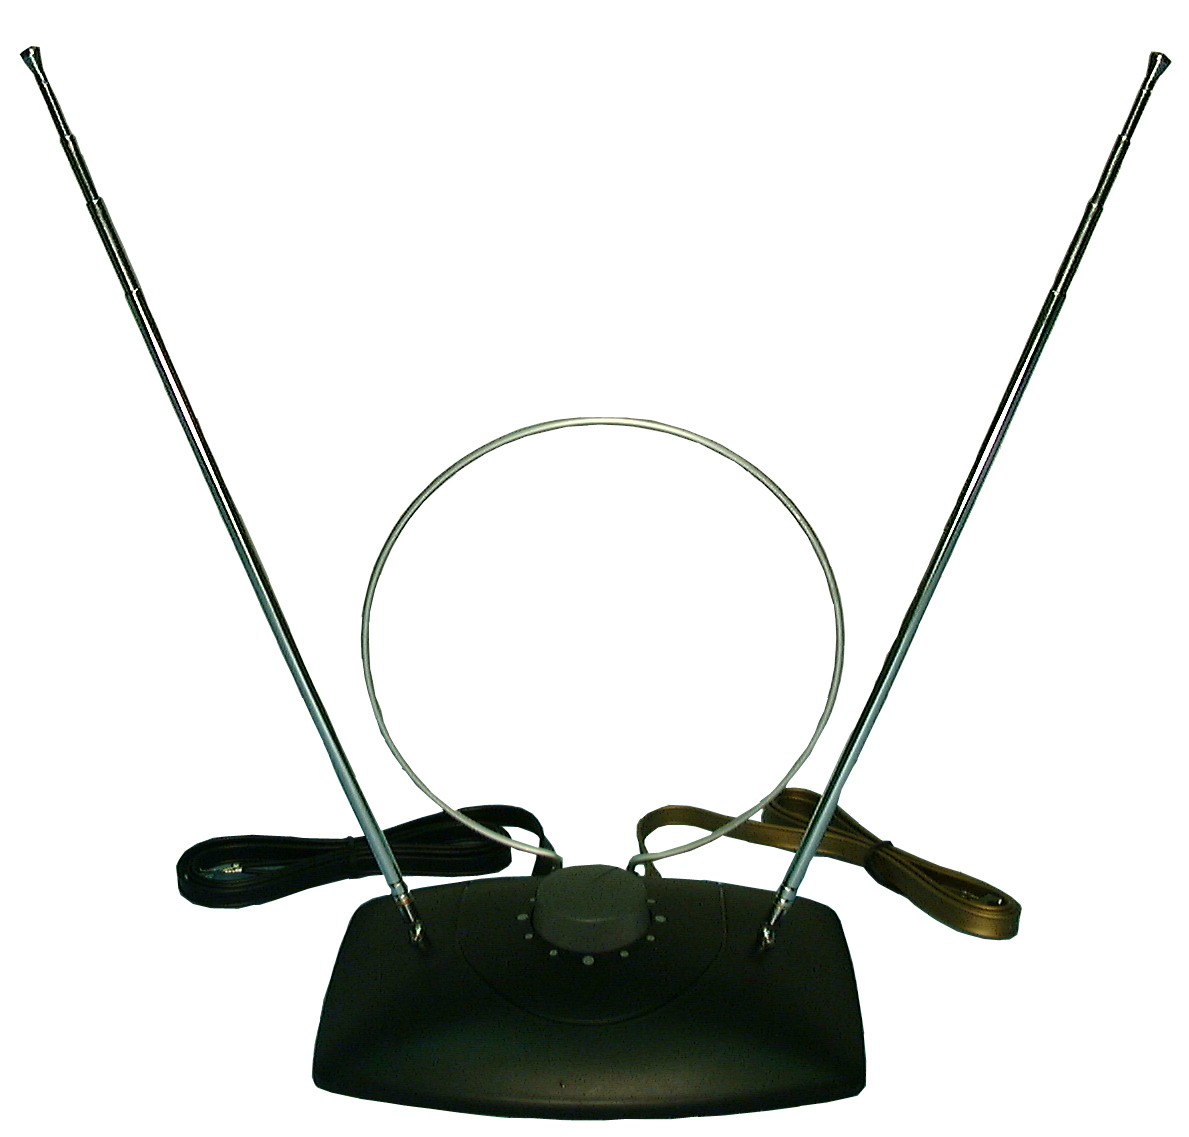 TOP-OF-SET ANTENNA